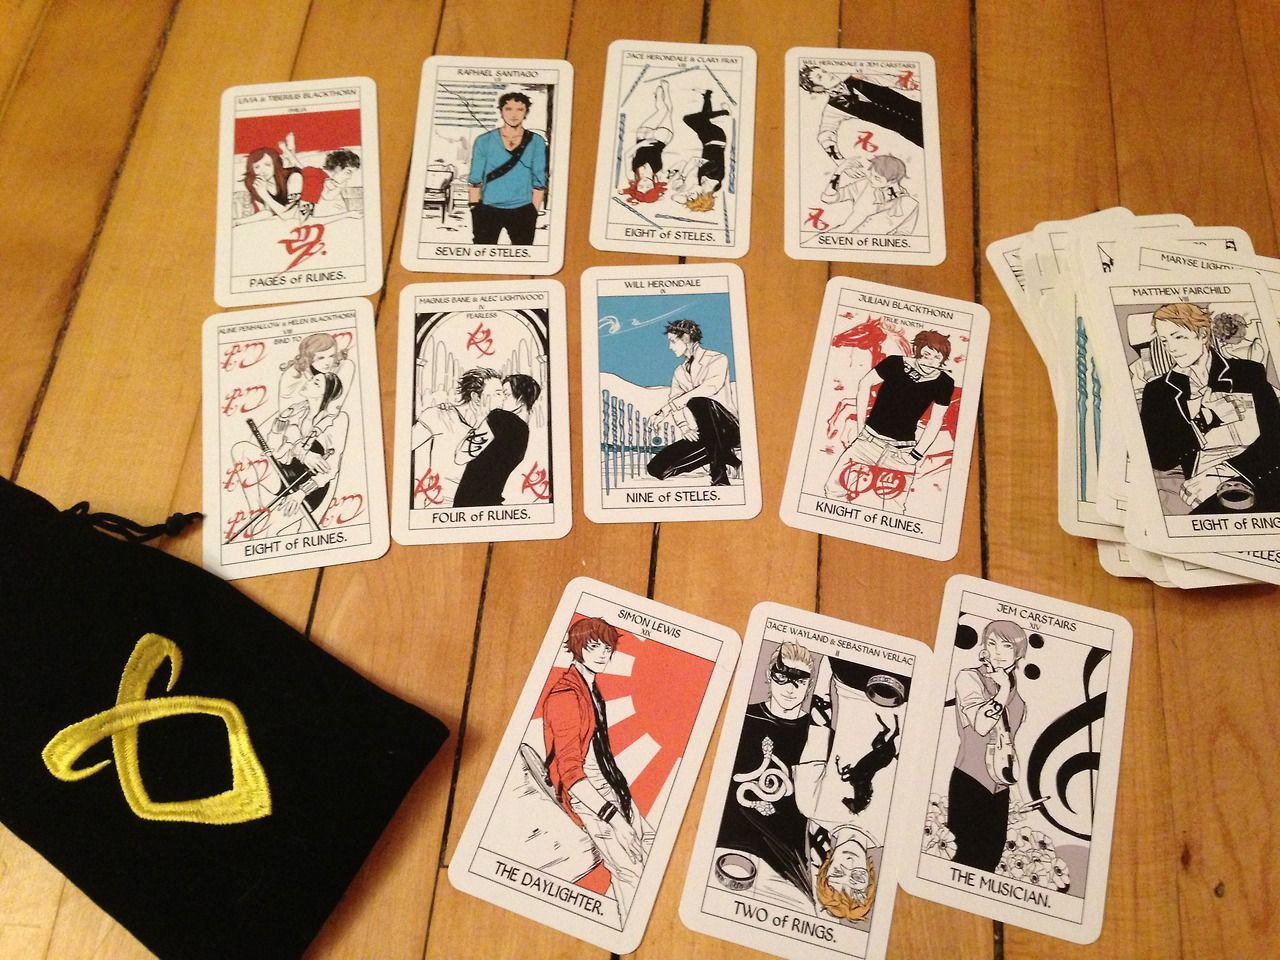 Cassandra jeans tarot cards have been printed they will